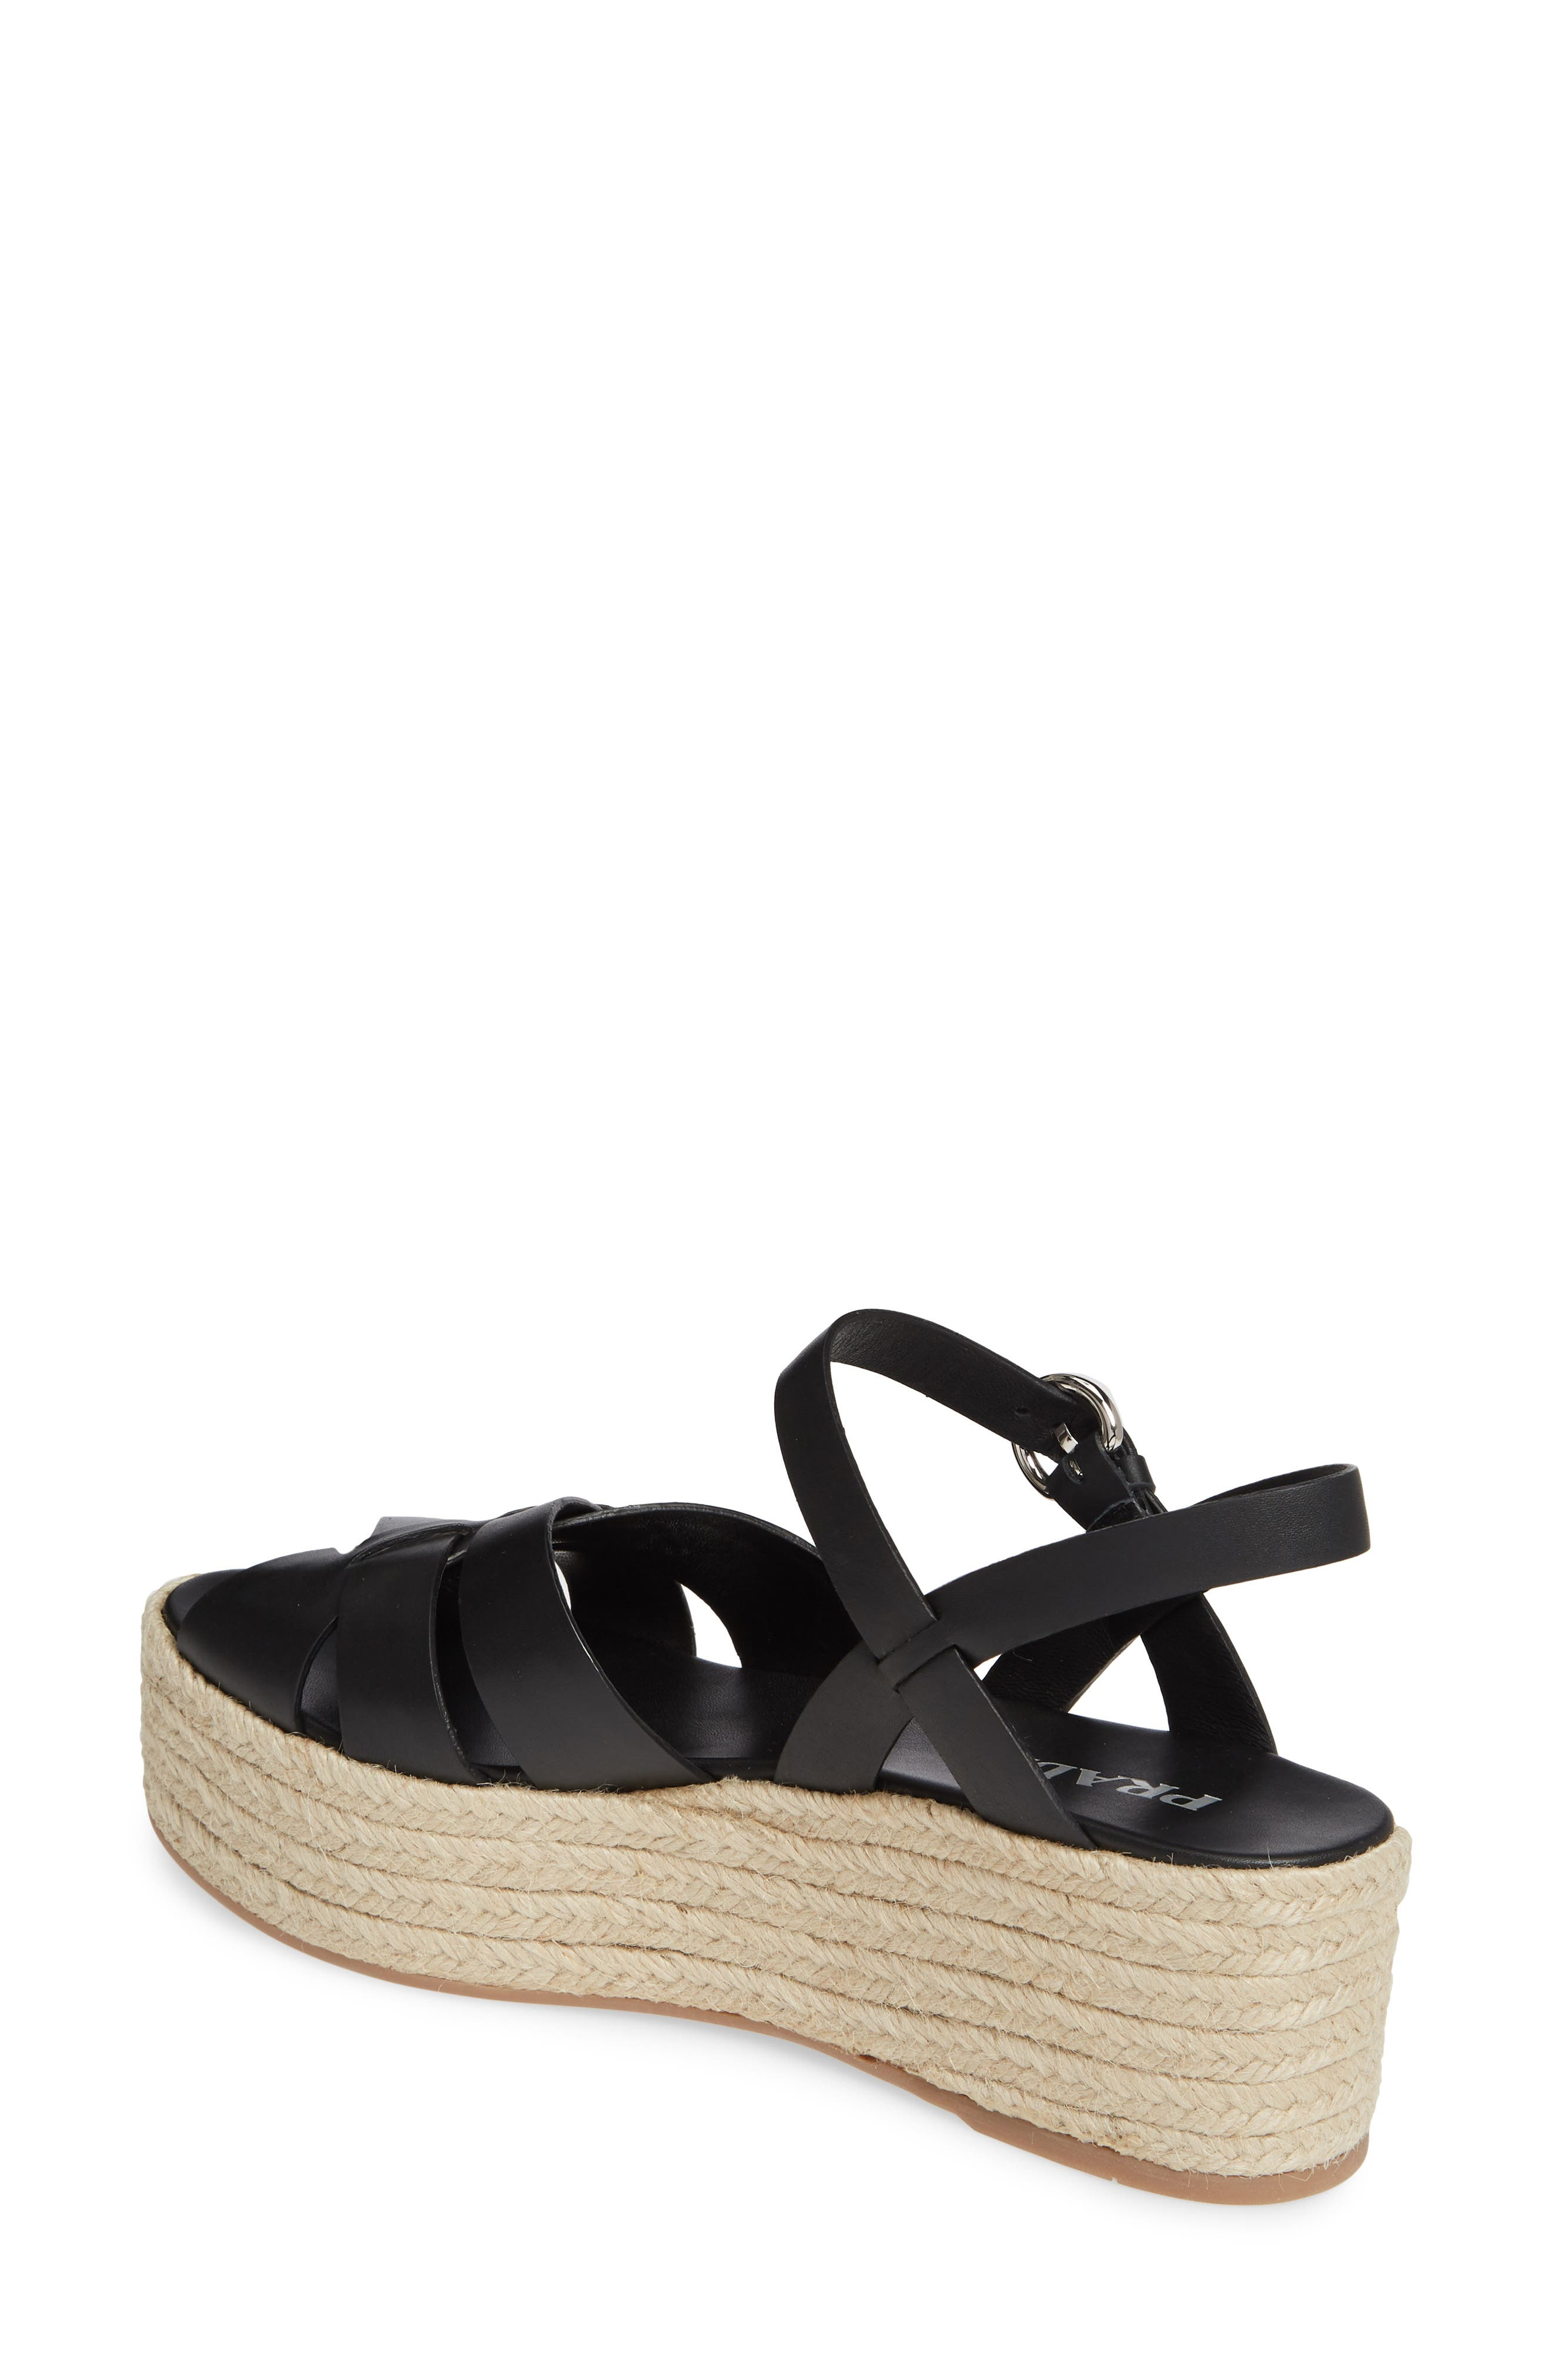 PRADA, Platform Espadrille Sandal, Alternate thumbnail 2, color, BLACK